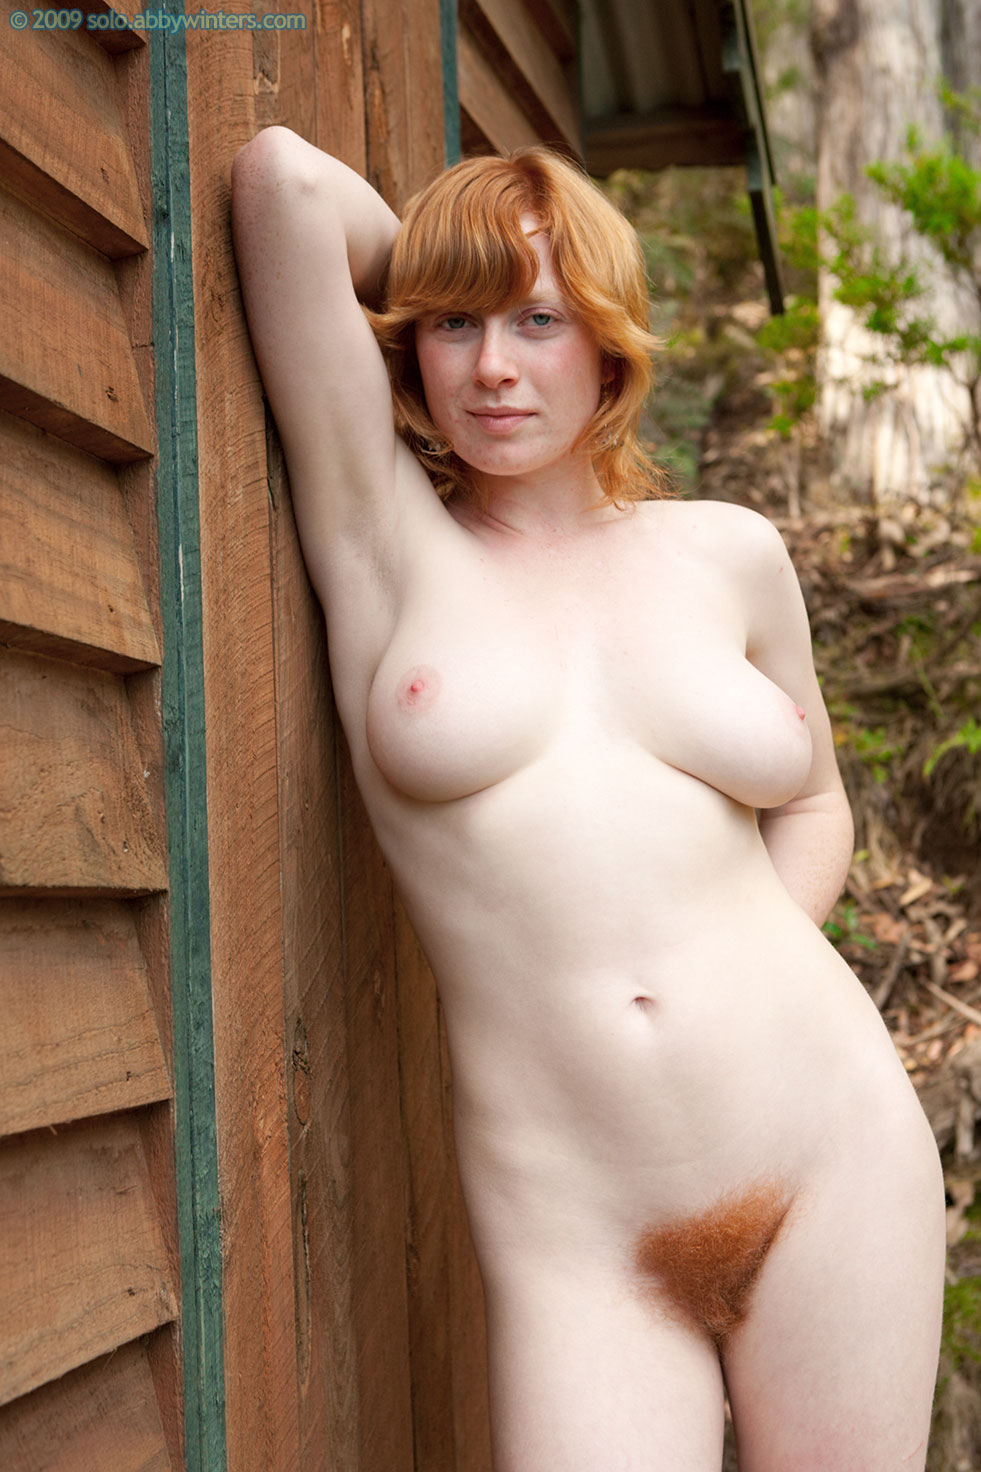 Very grateful free amateur nude photos redhead was under